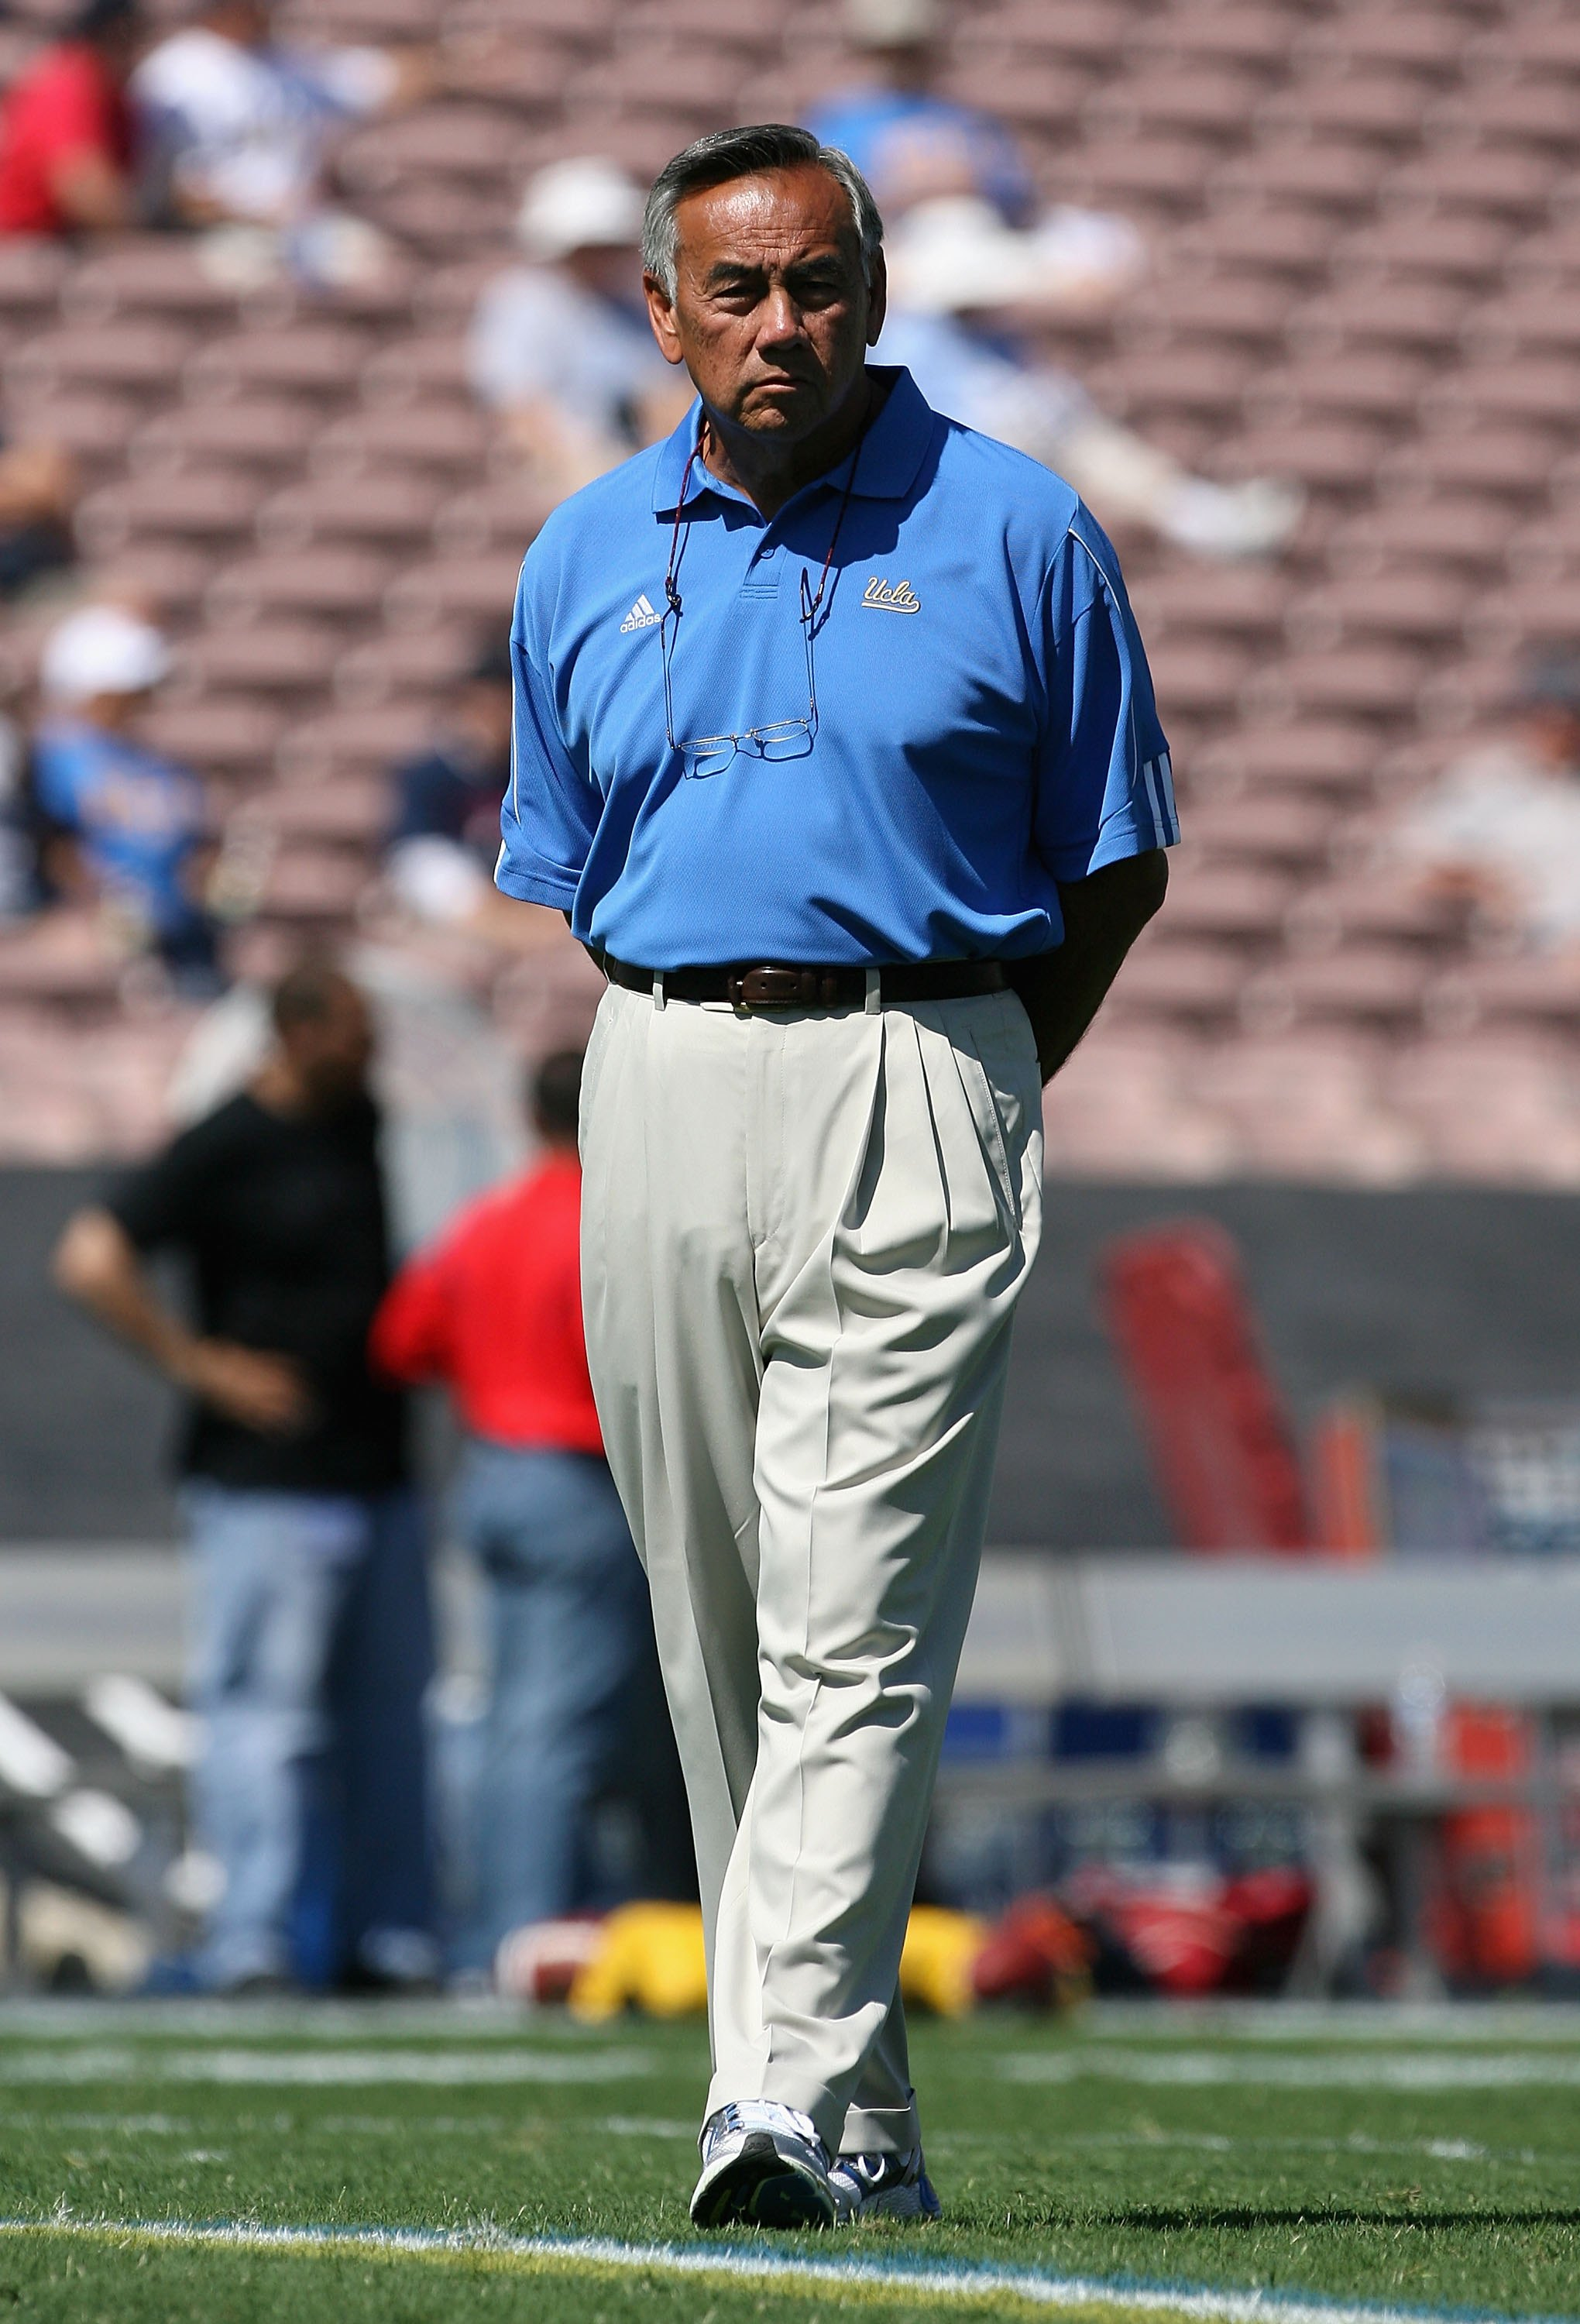 PASADENA, CA - SEPTEMBER 20:  Offensive Coordinatorm Norm Chow of the UCLA Bruins watches warm ups before the college football game against the Arizona Wildcats at the Rose Bowl on September 13, 2008 in Pasadena, California. The Wildcats defeated the Brui